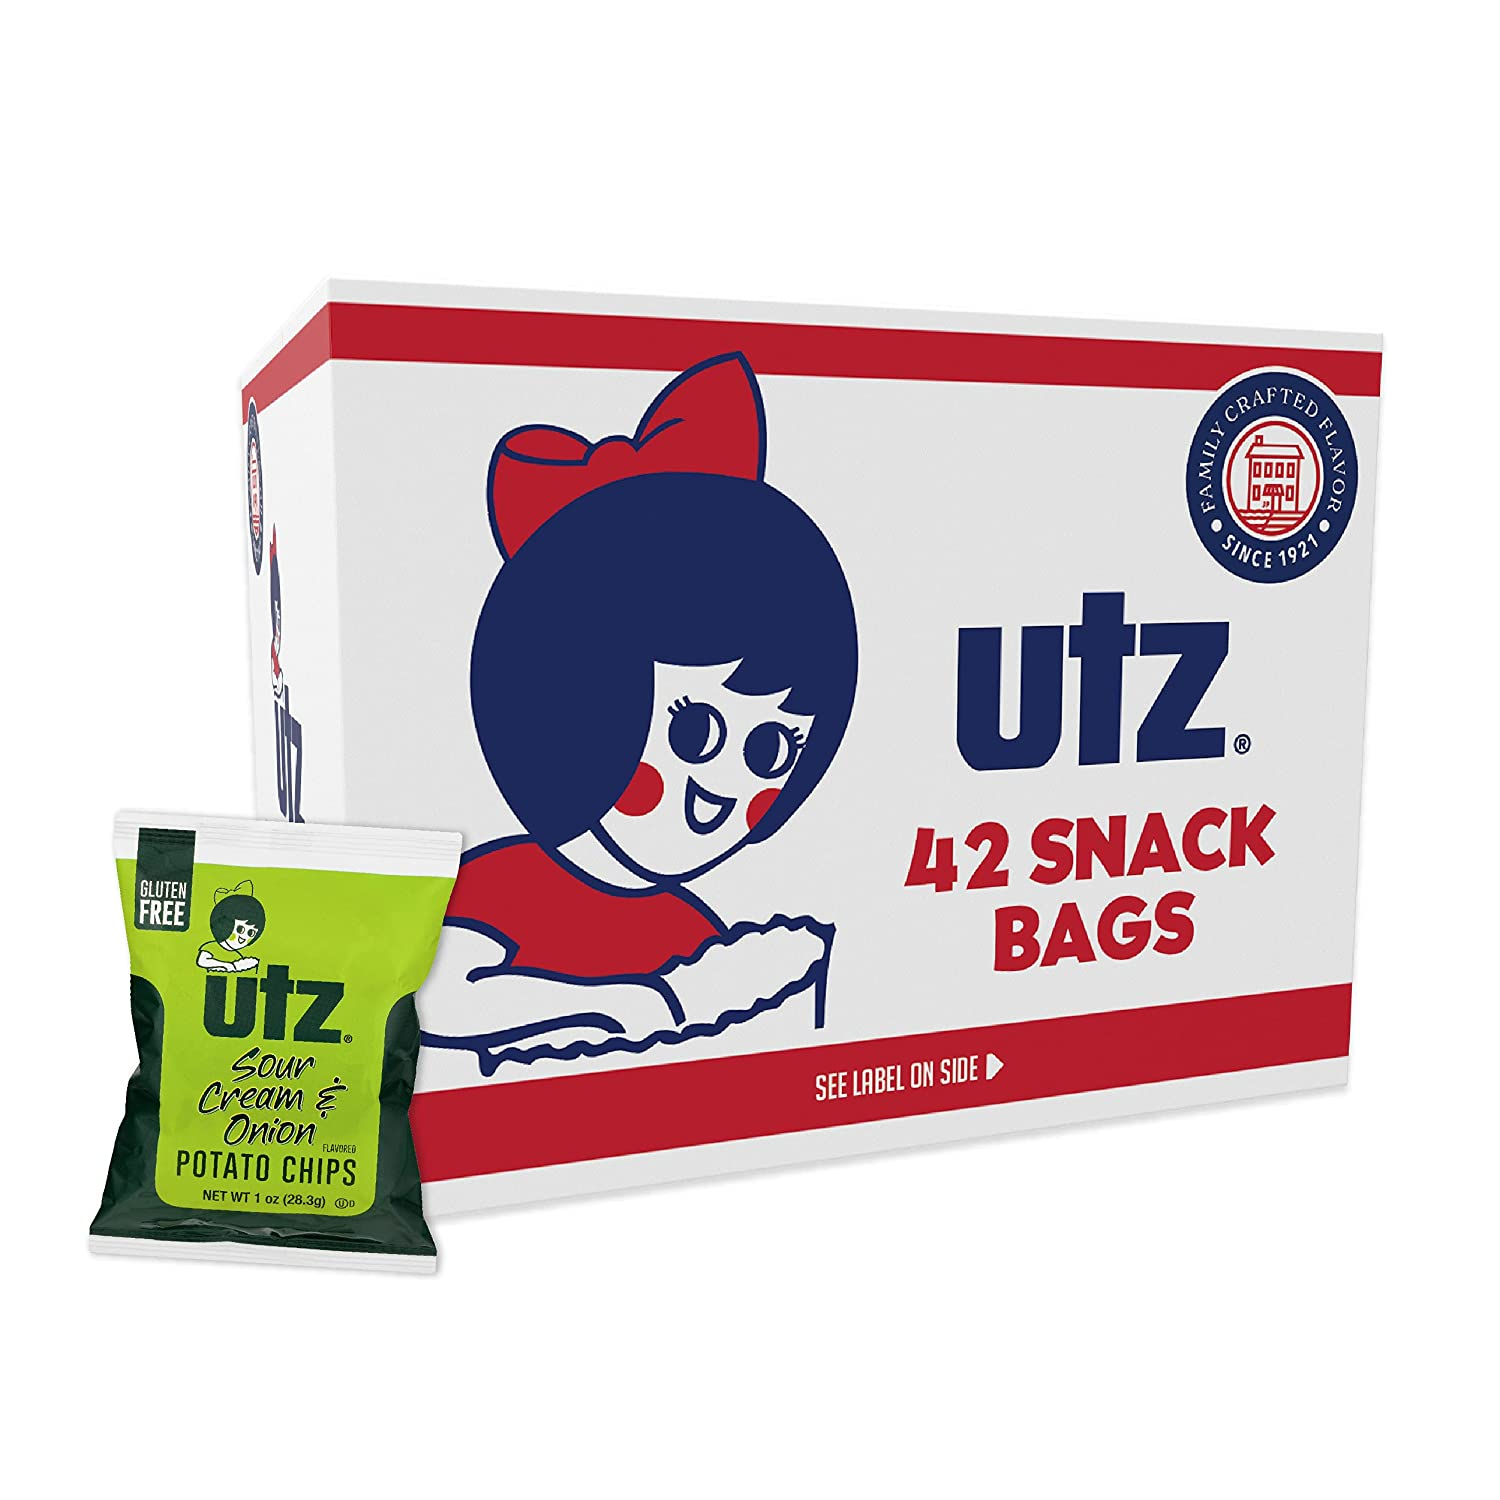 Utz Potato Chips, Sour Cream & Onion – 1 oz. Bags (42 Count) – Crispy Potato Chips Made from Fresh Potatoes, Crunchy Individual Snacks to Go, Gluten Free Snacks,(Pack of 1)